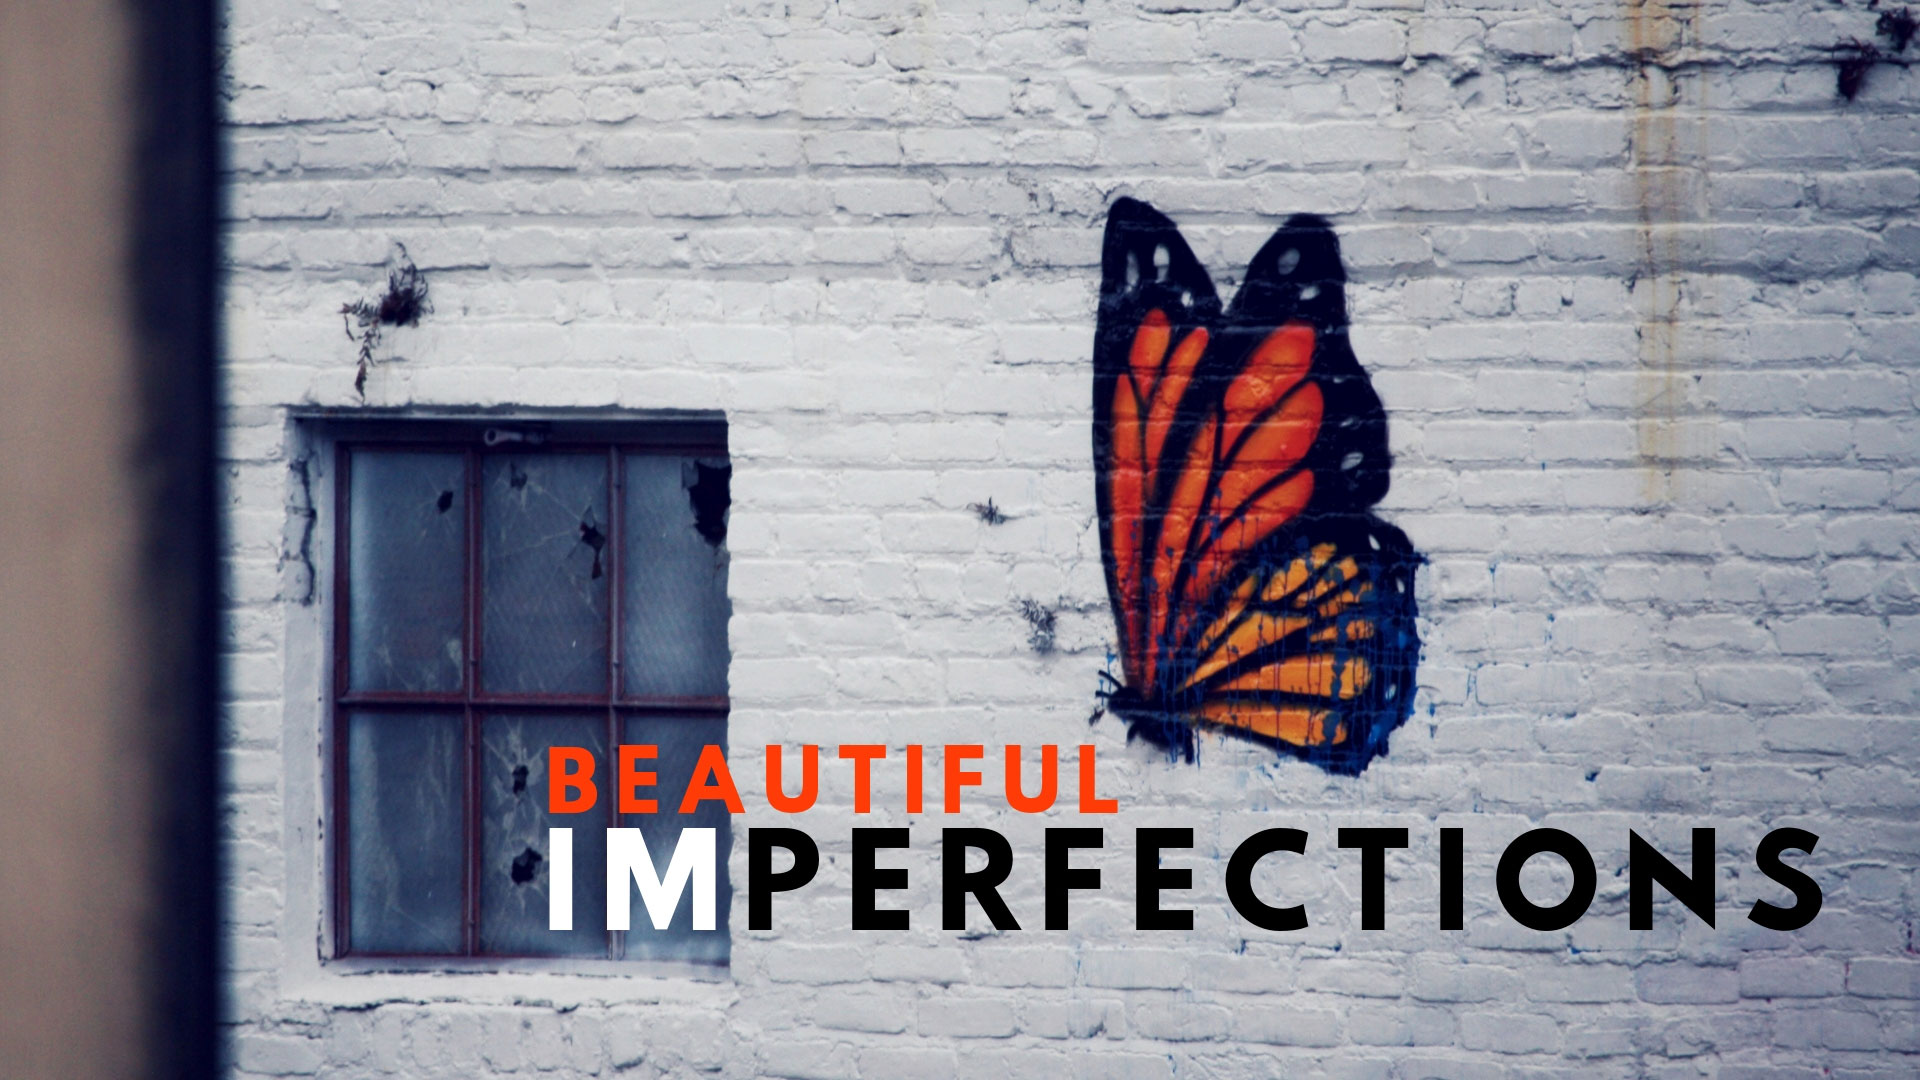 Series: Beautiful Imperfections